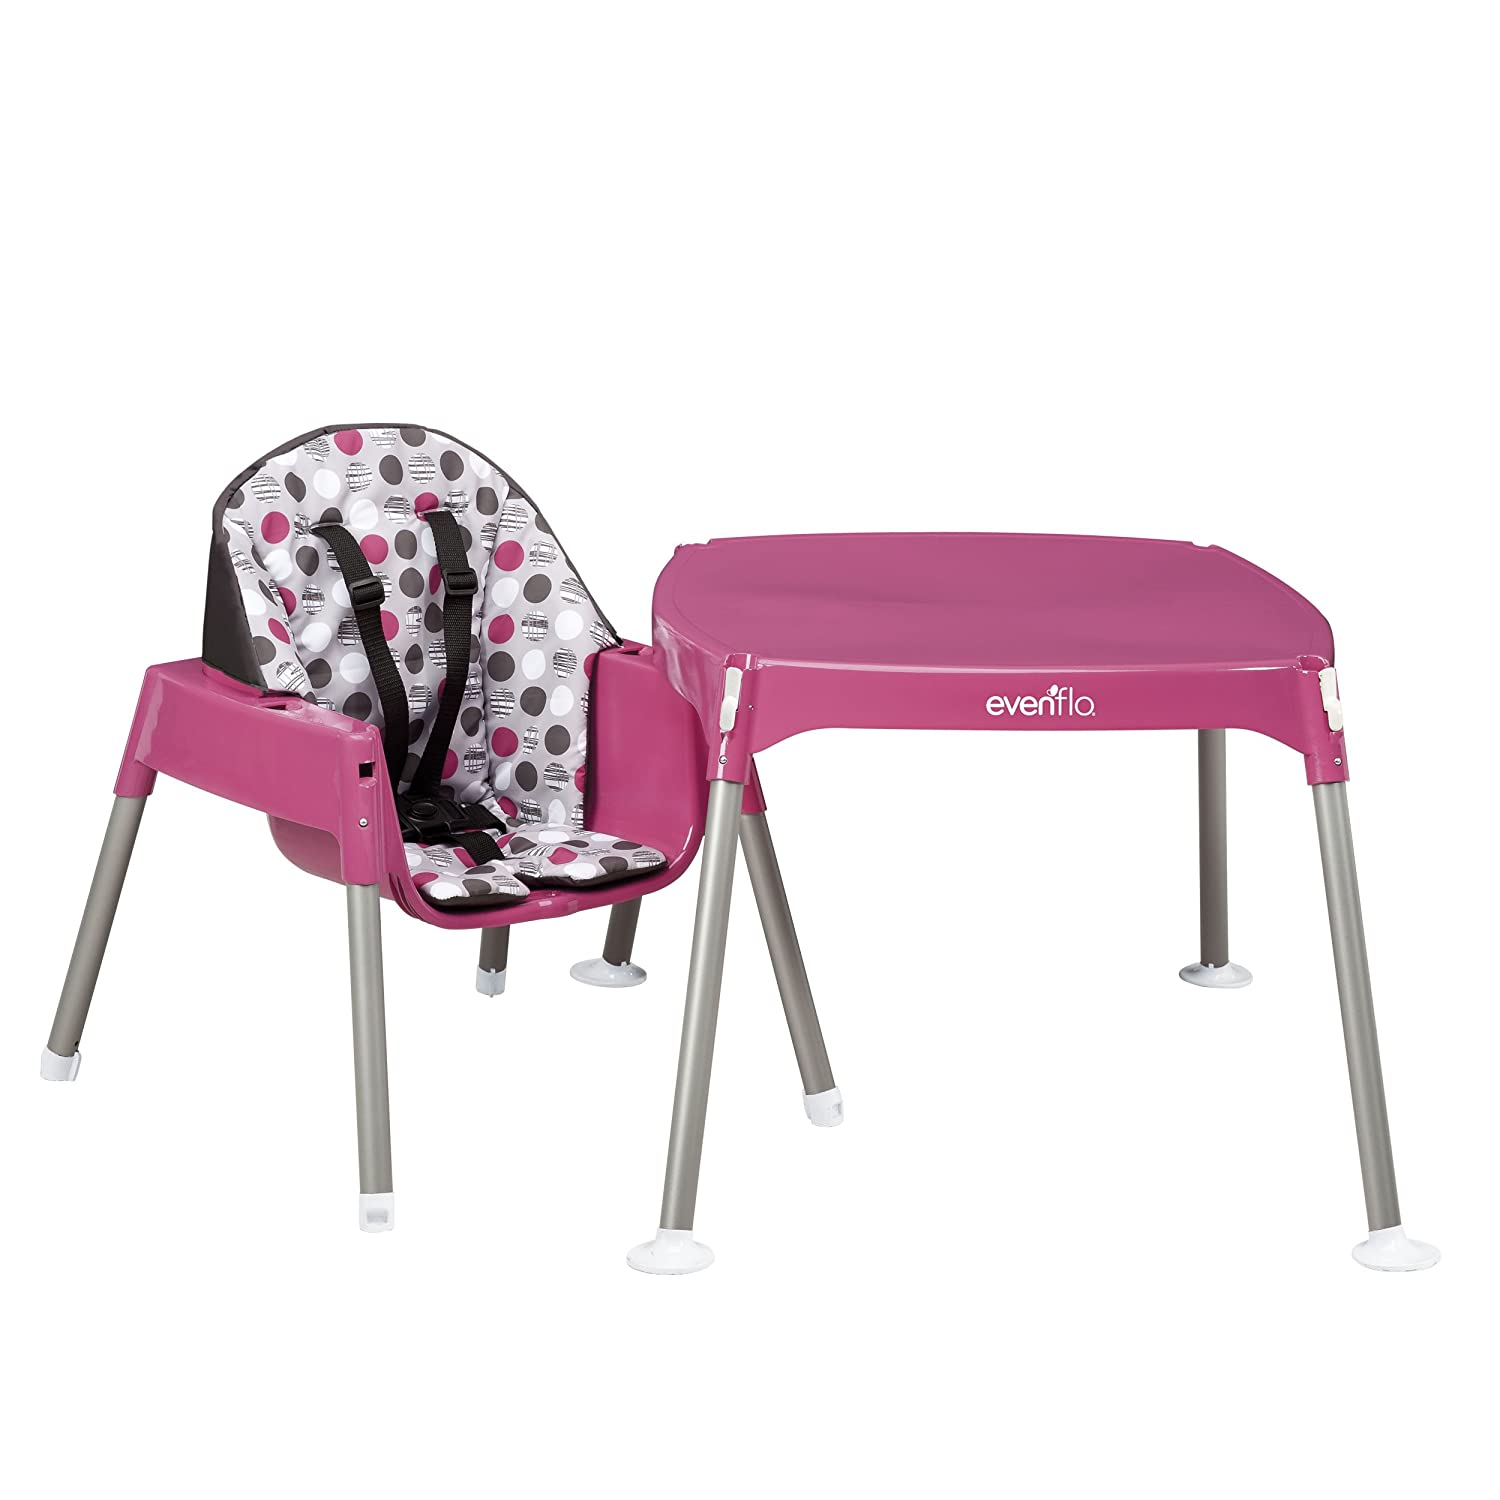 Evenflo Convertible High Chair Dottie Rose 11.6-Pounds